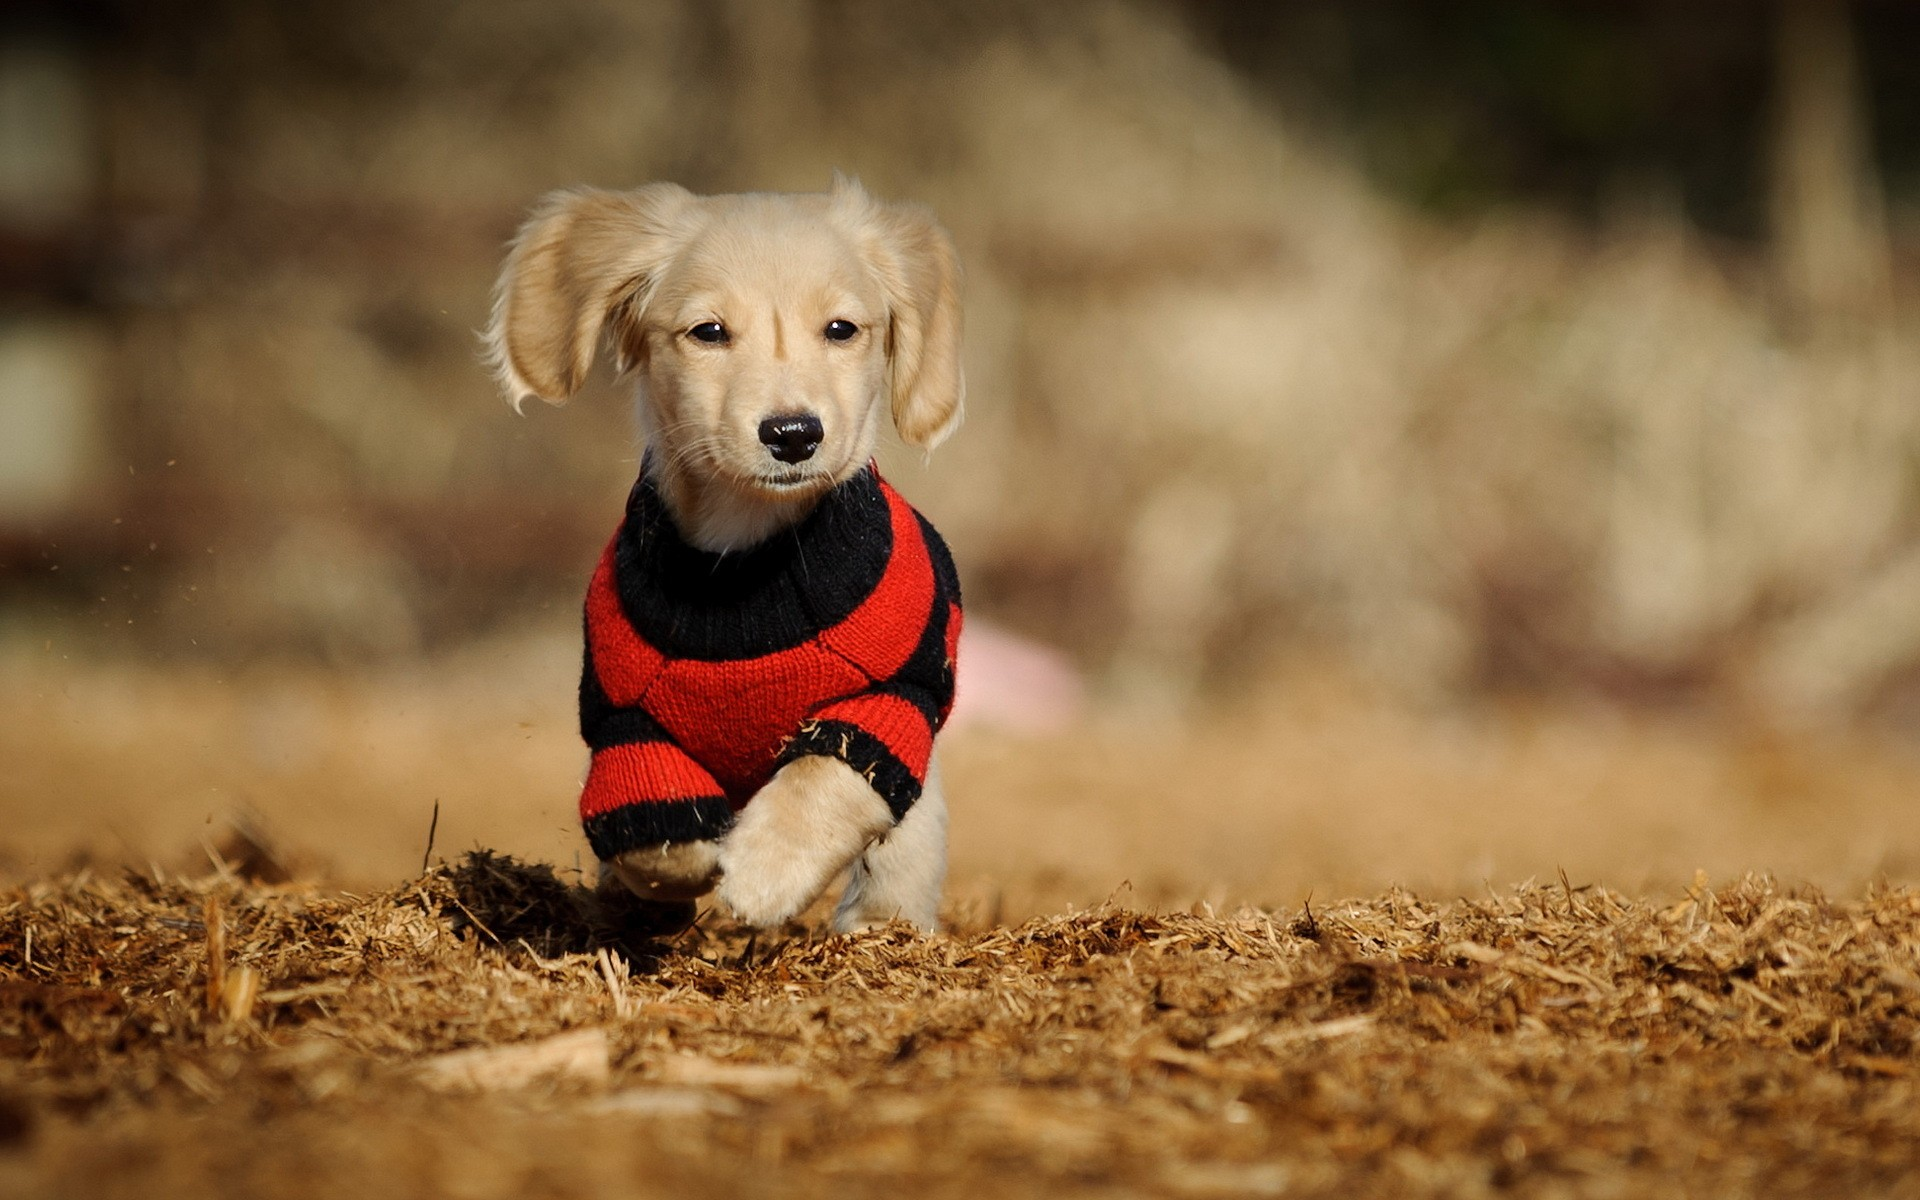 cute dogs pictures wallpapers - wallpaper hd